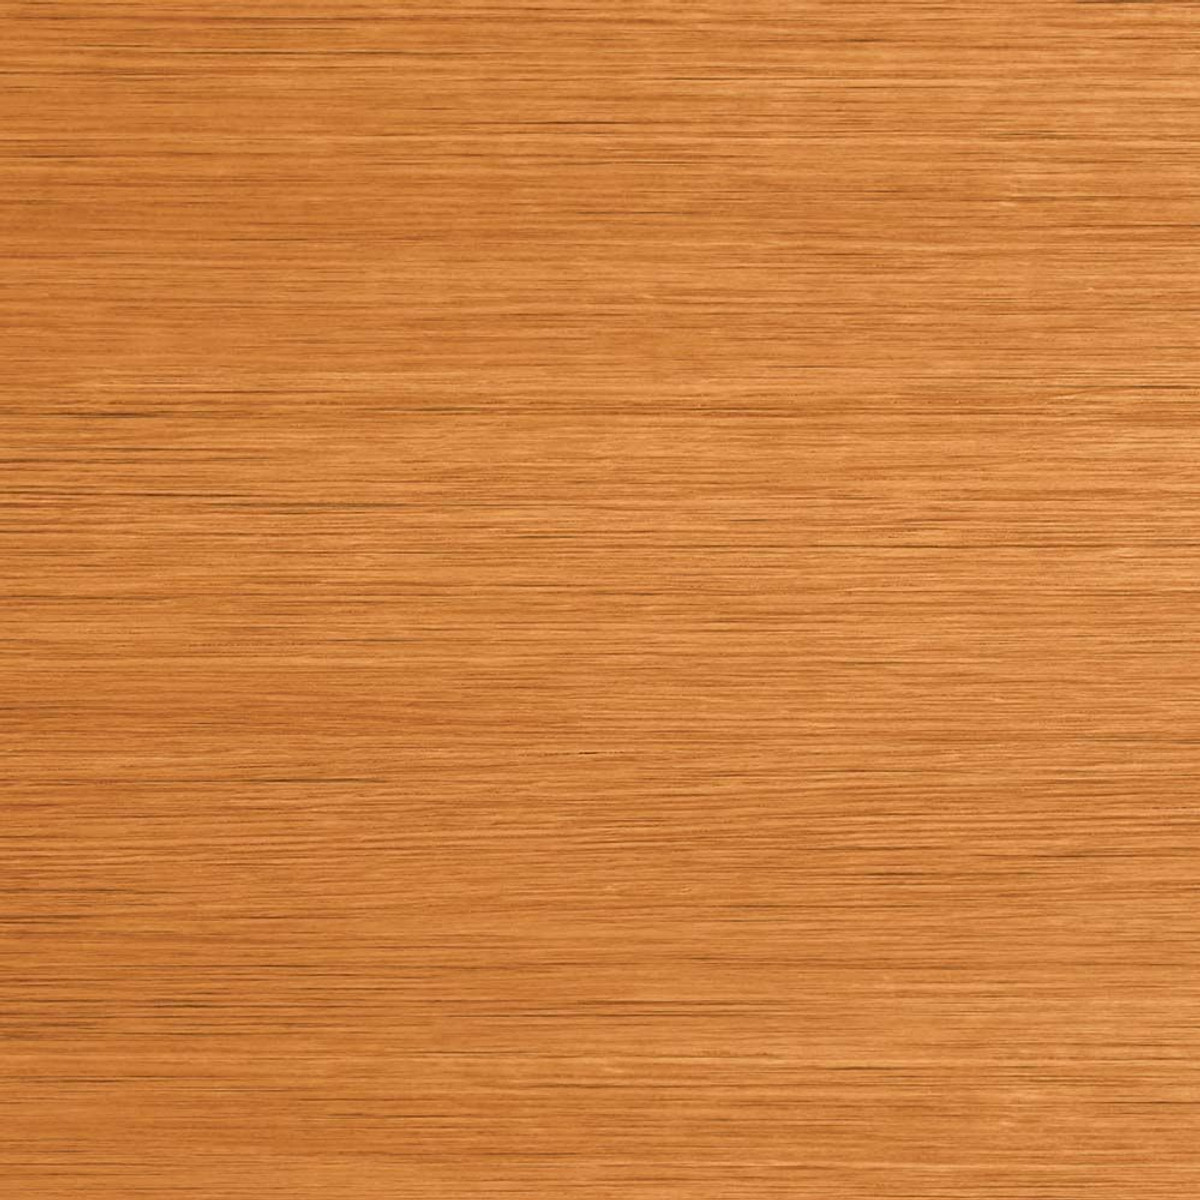 Perfection Floor Tile Natural Stone Wood Grain Maple Closeup